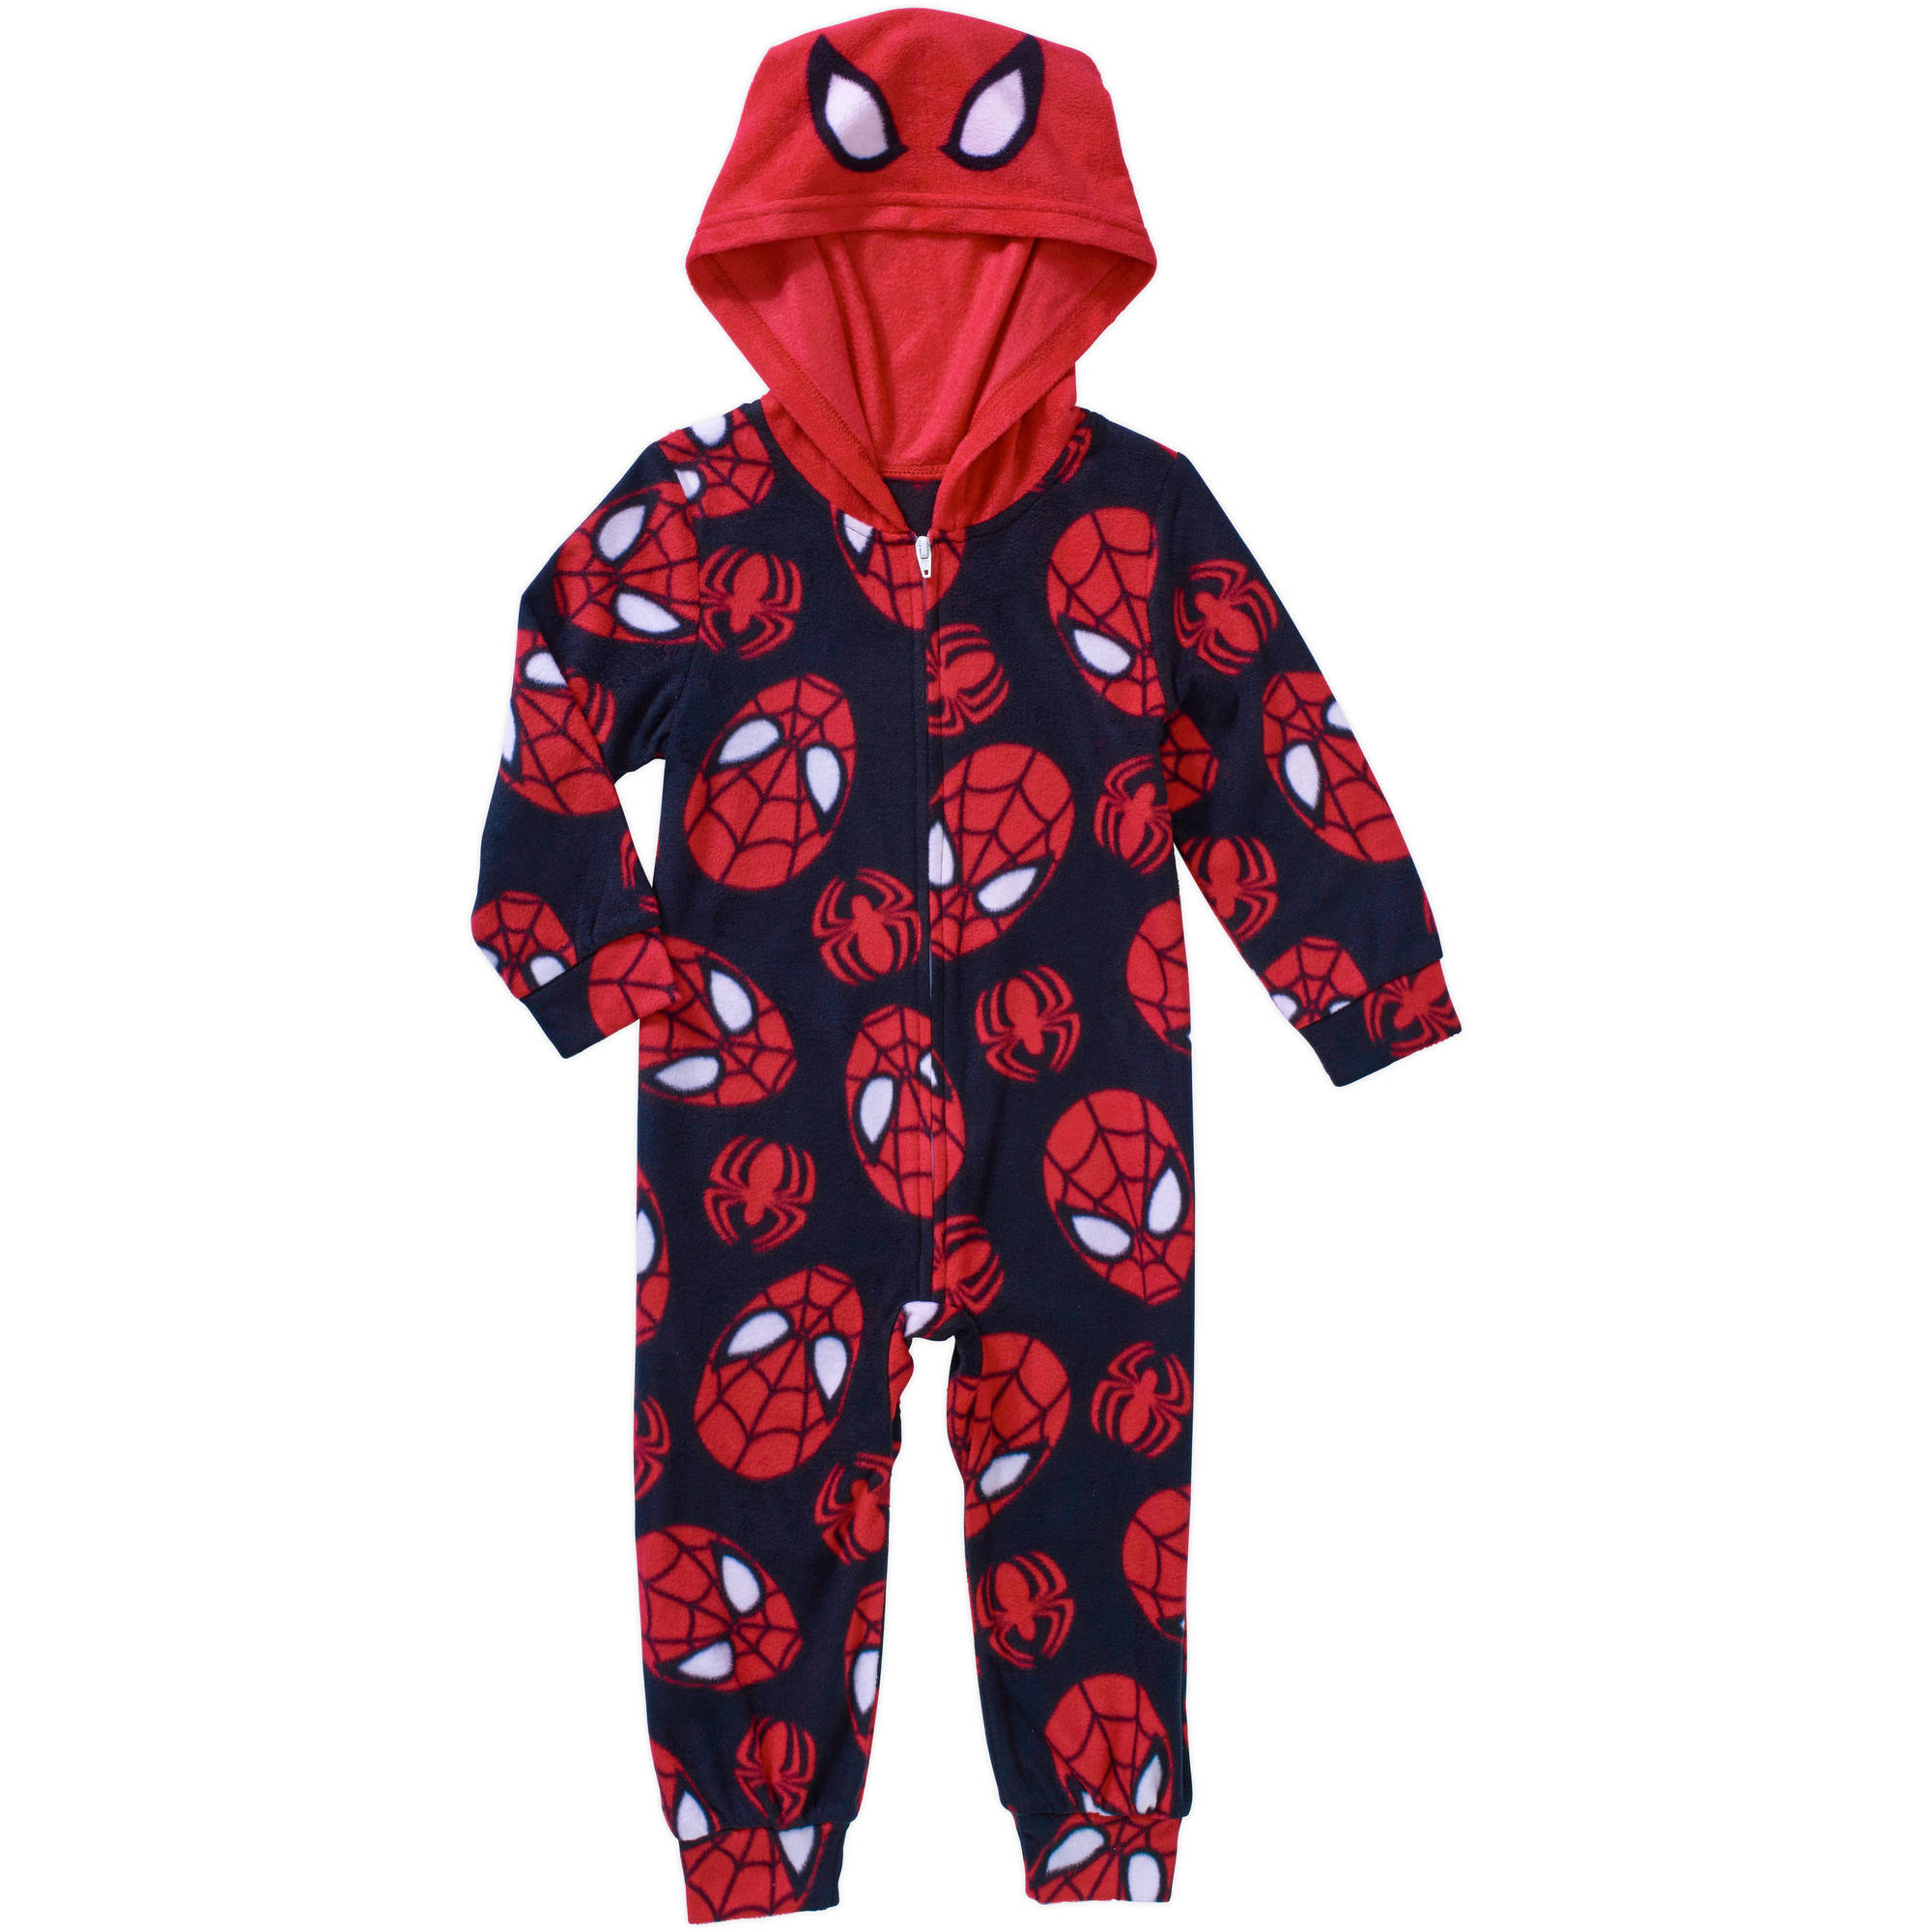 Spider-Man Toddler Boy Hooded Novelty Zip Footed Pajama